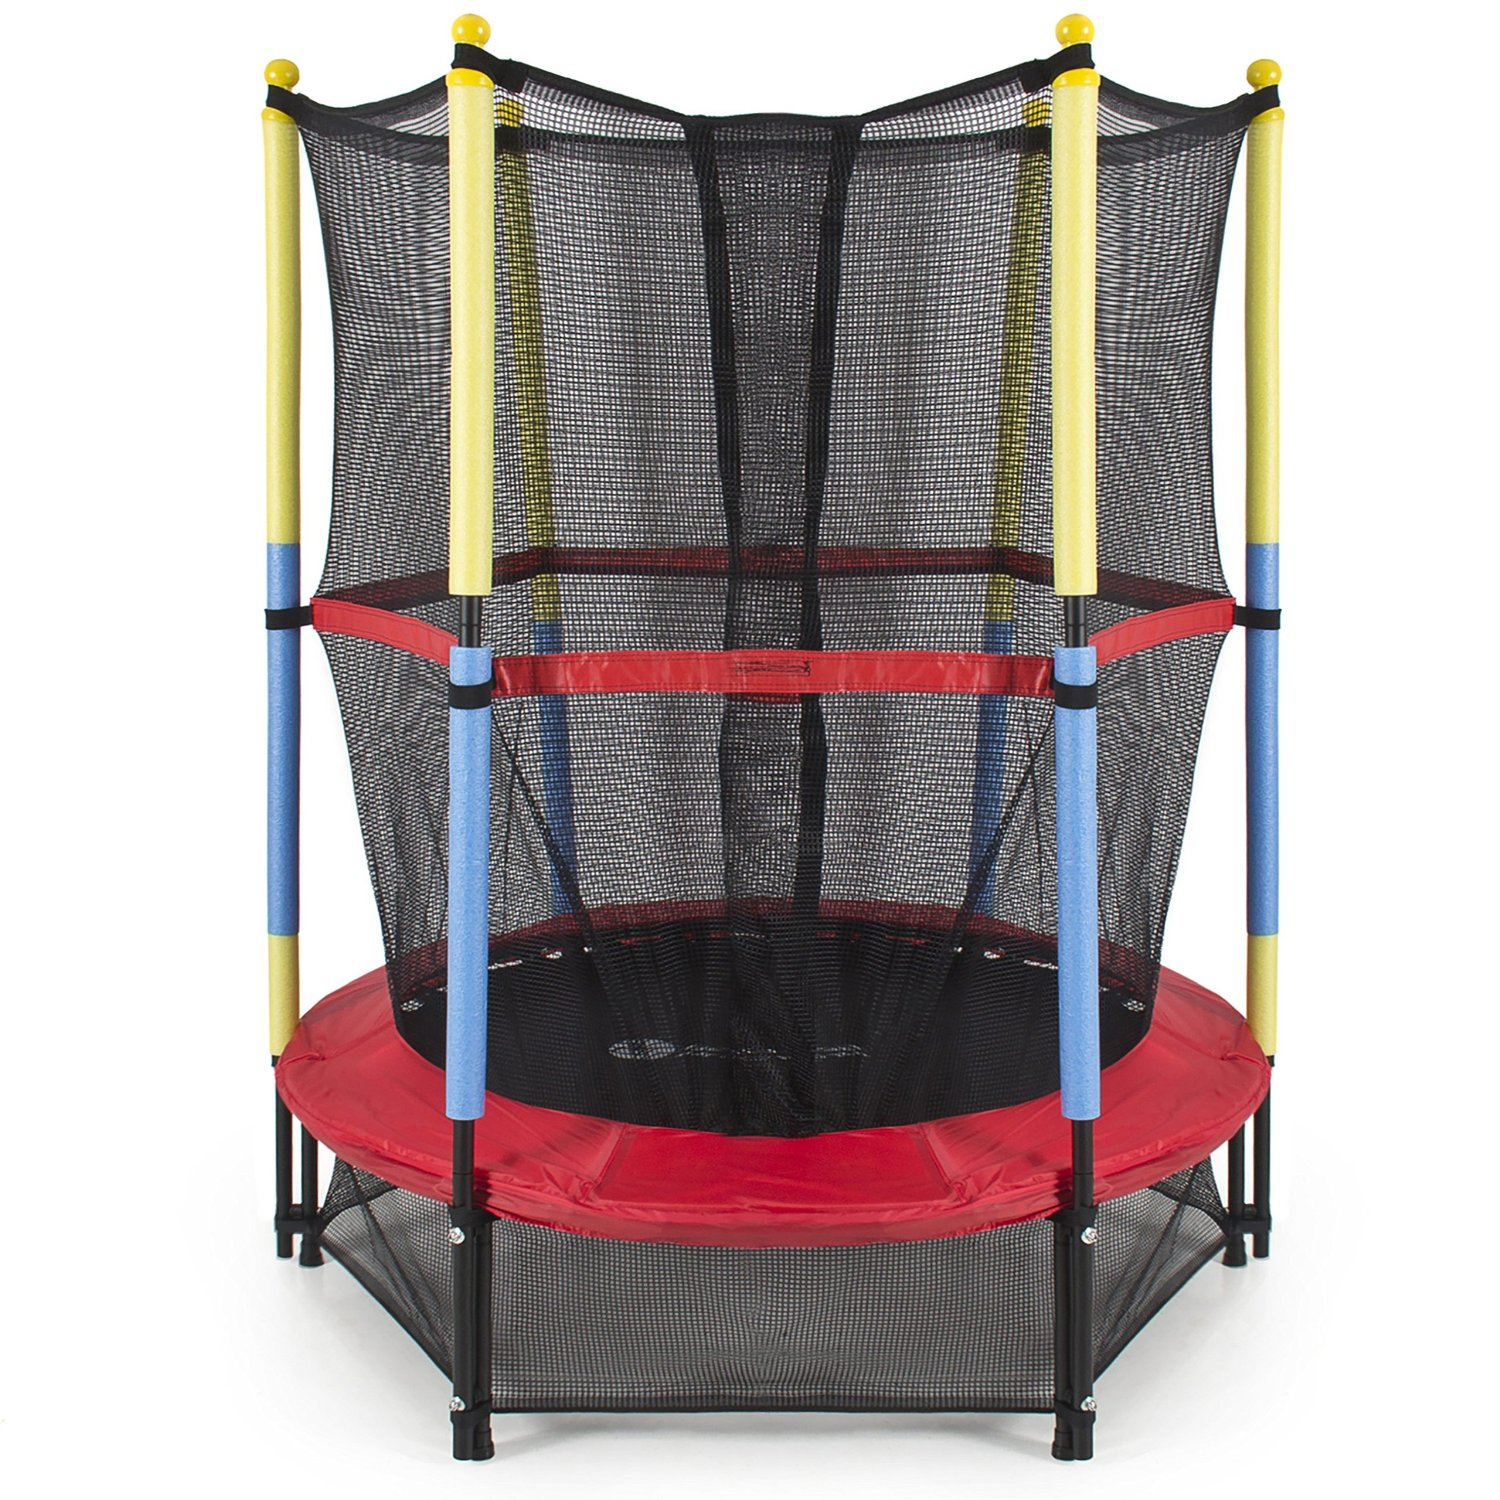 Kids Jumping Trampoline For Fun Fitness